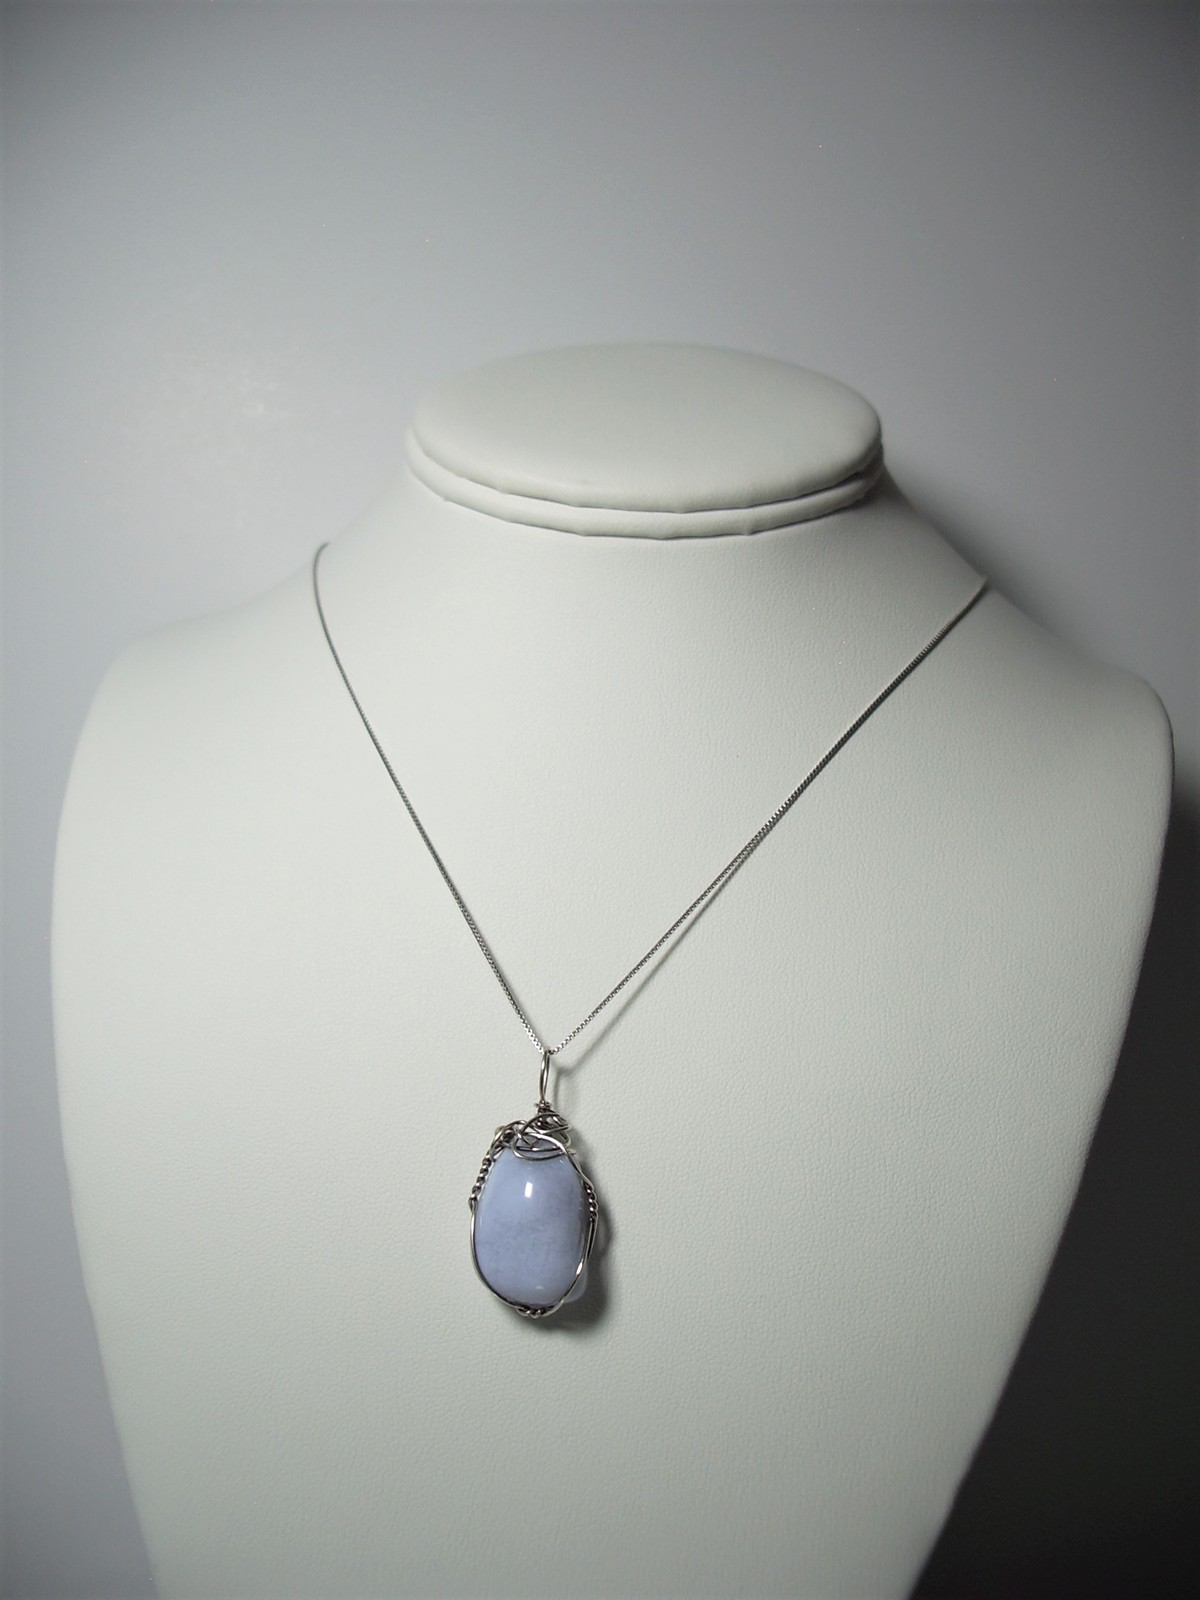 Jemel .925 SS Wire Wrapped Blue Lace Agate Pendant